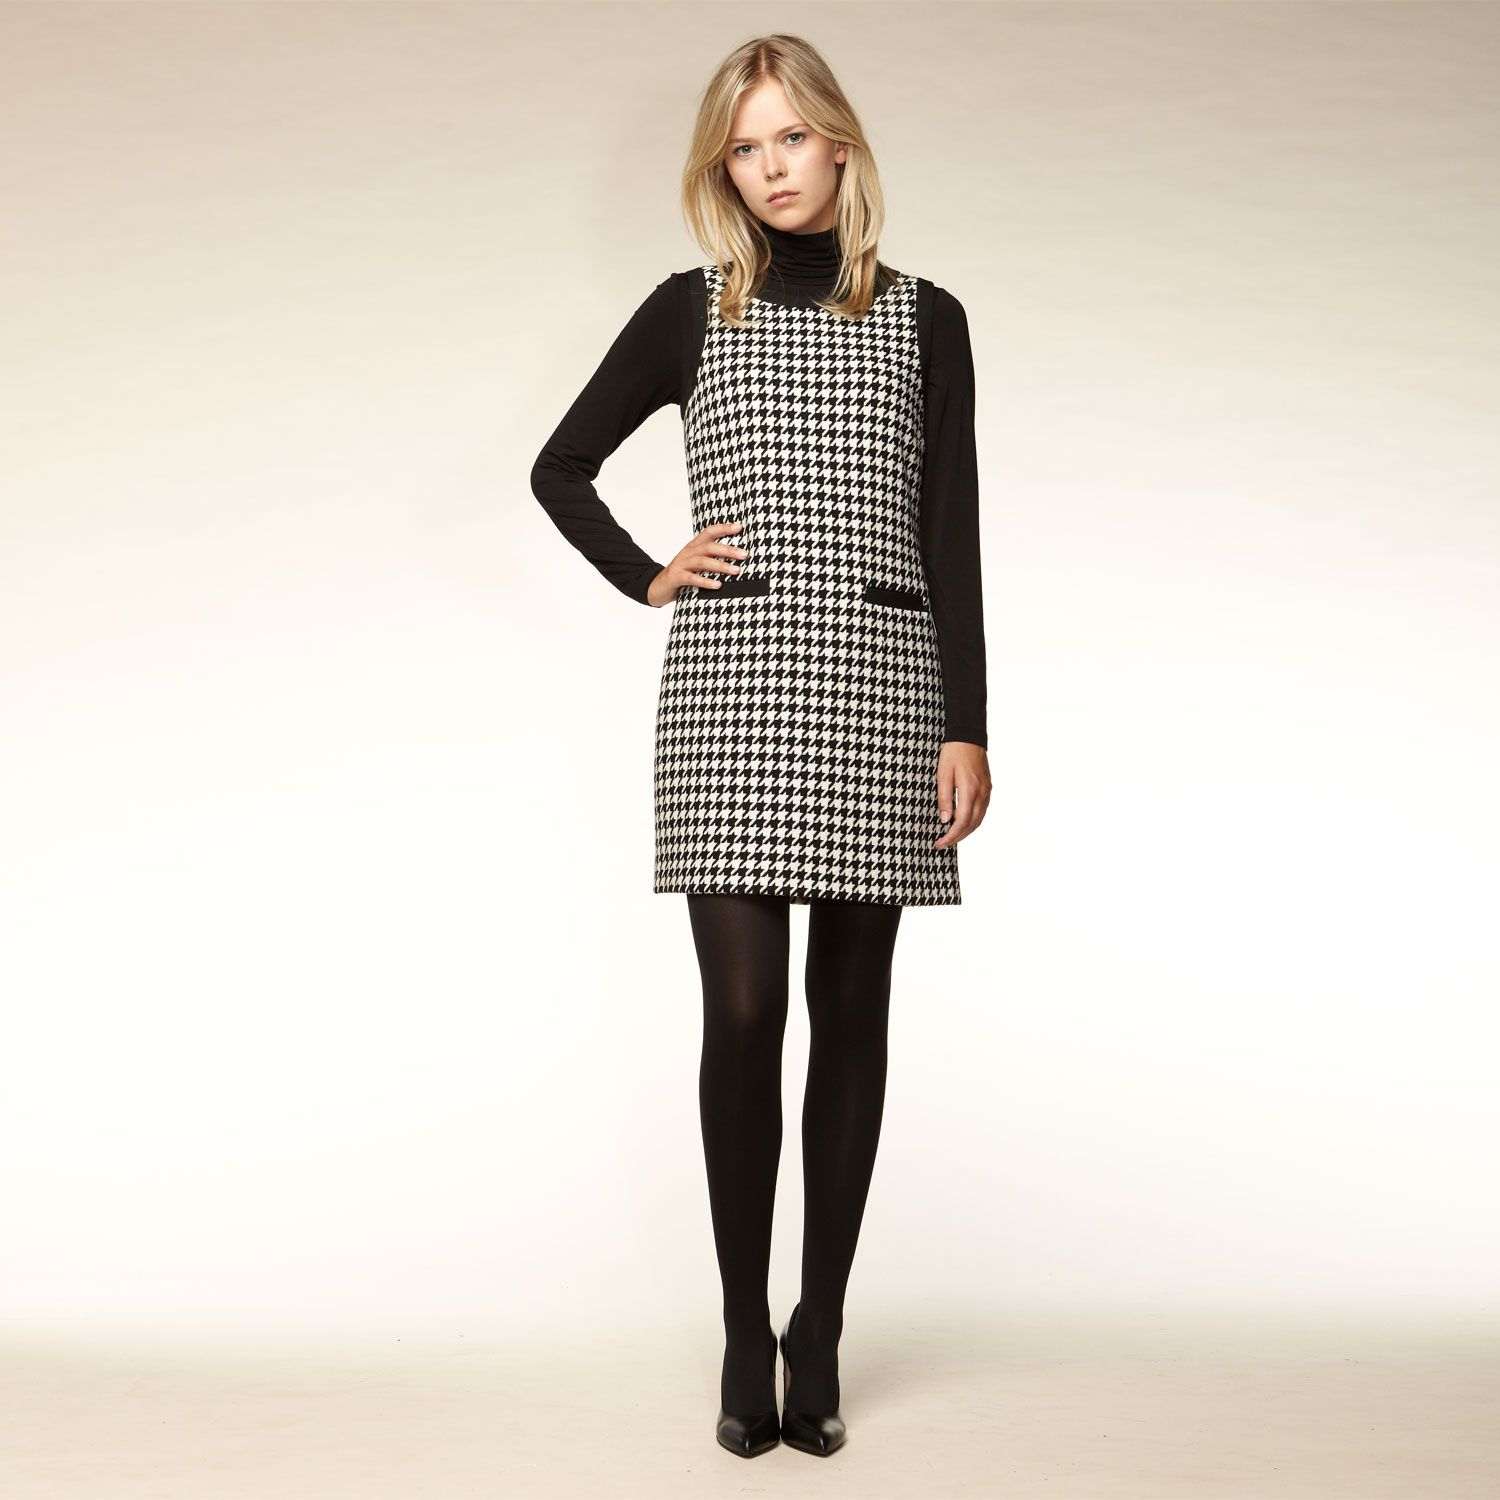 Sleeveless knitted houndstooth dress